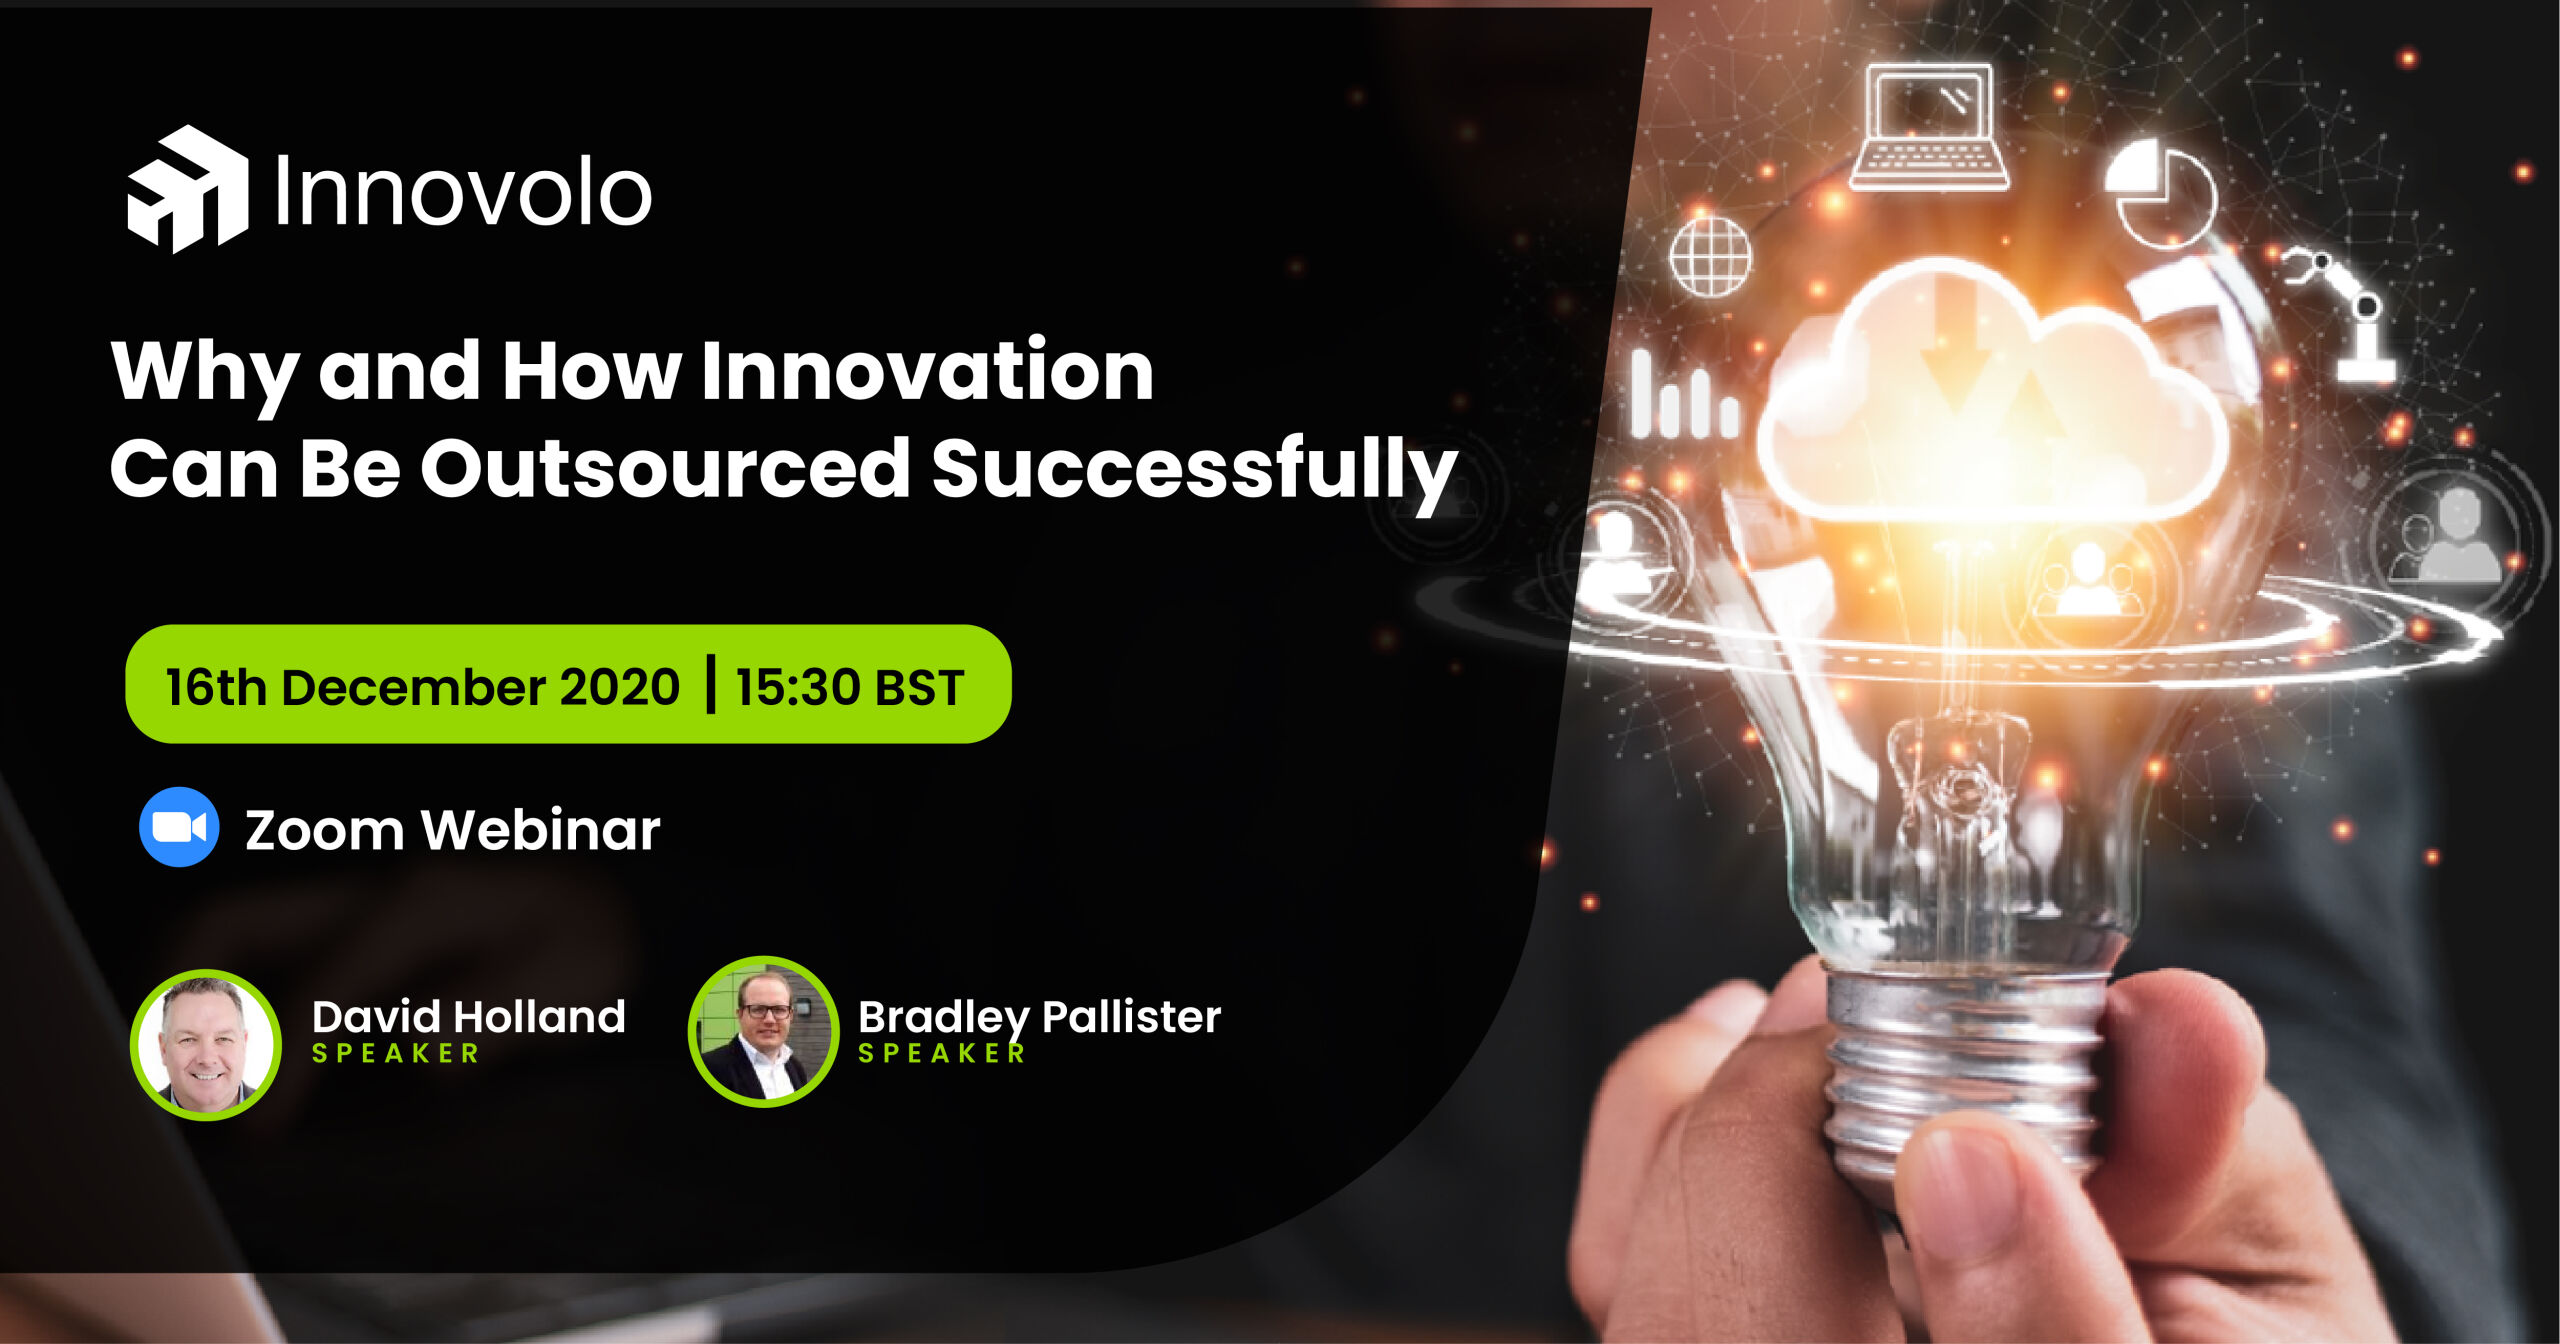 outsourced, Why and How Innovation can be Outsourced Successfully – Webinar with David Holland, Innovolo Ltd